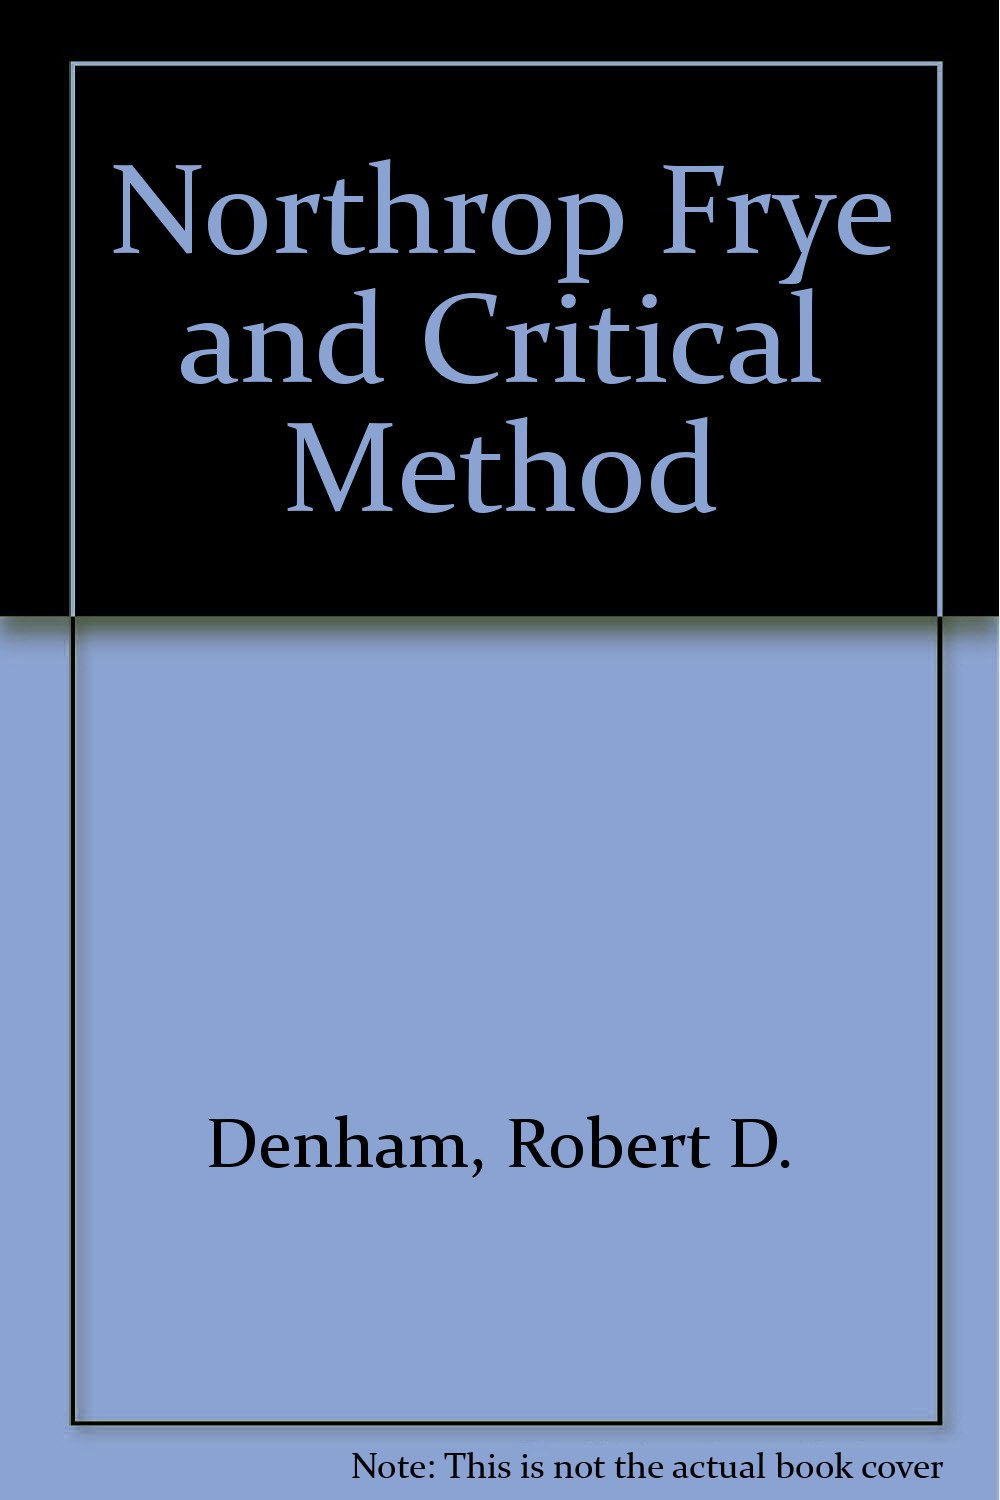 Amazon.com: Northrop Frye and Critical Method (9780271005461 ...